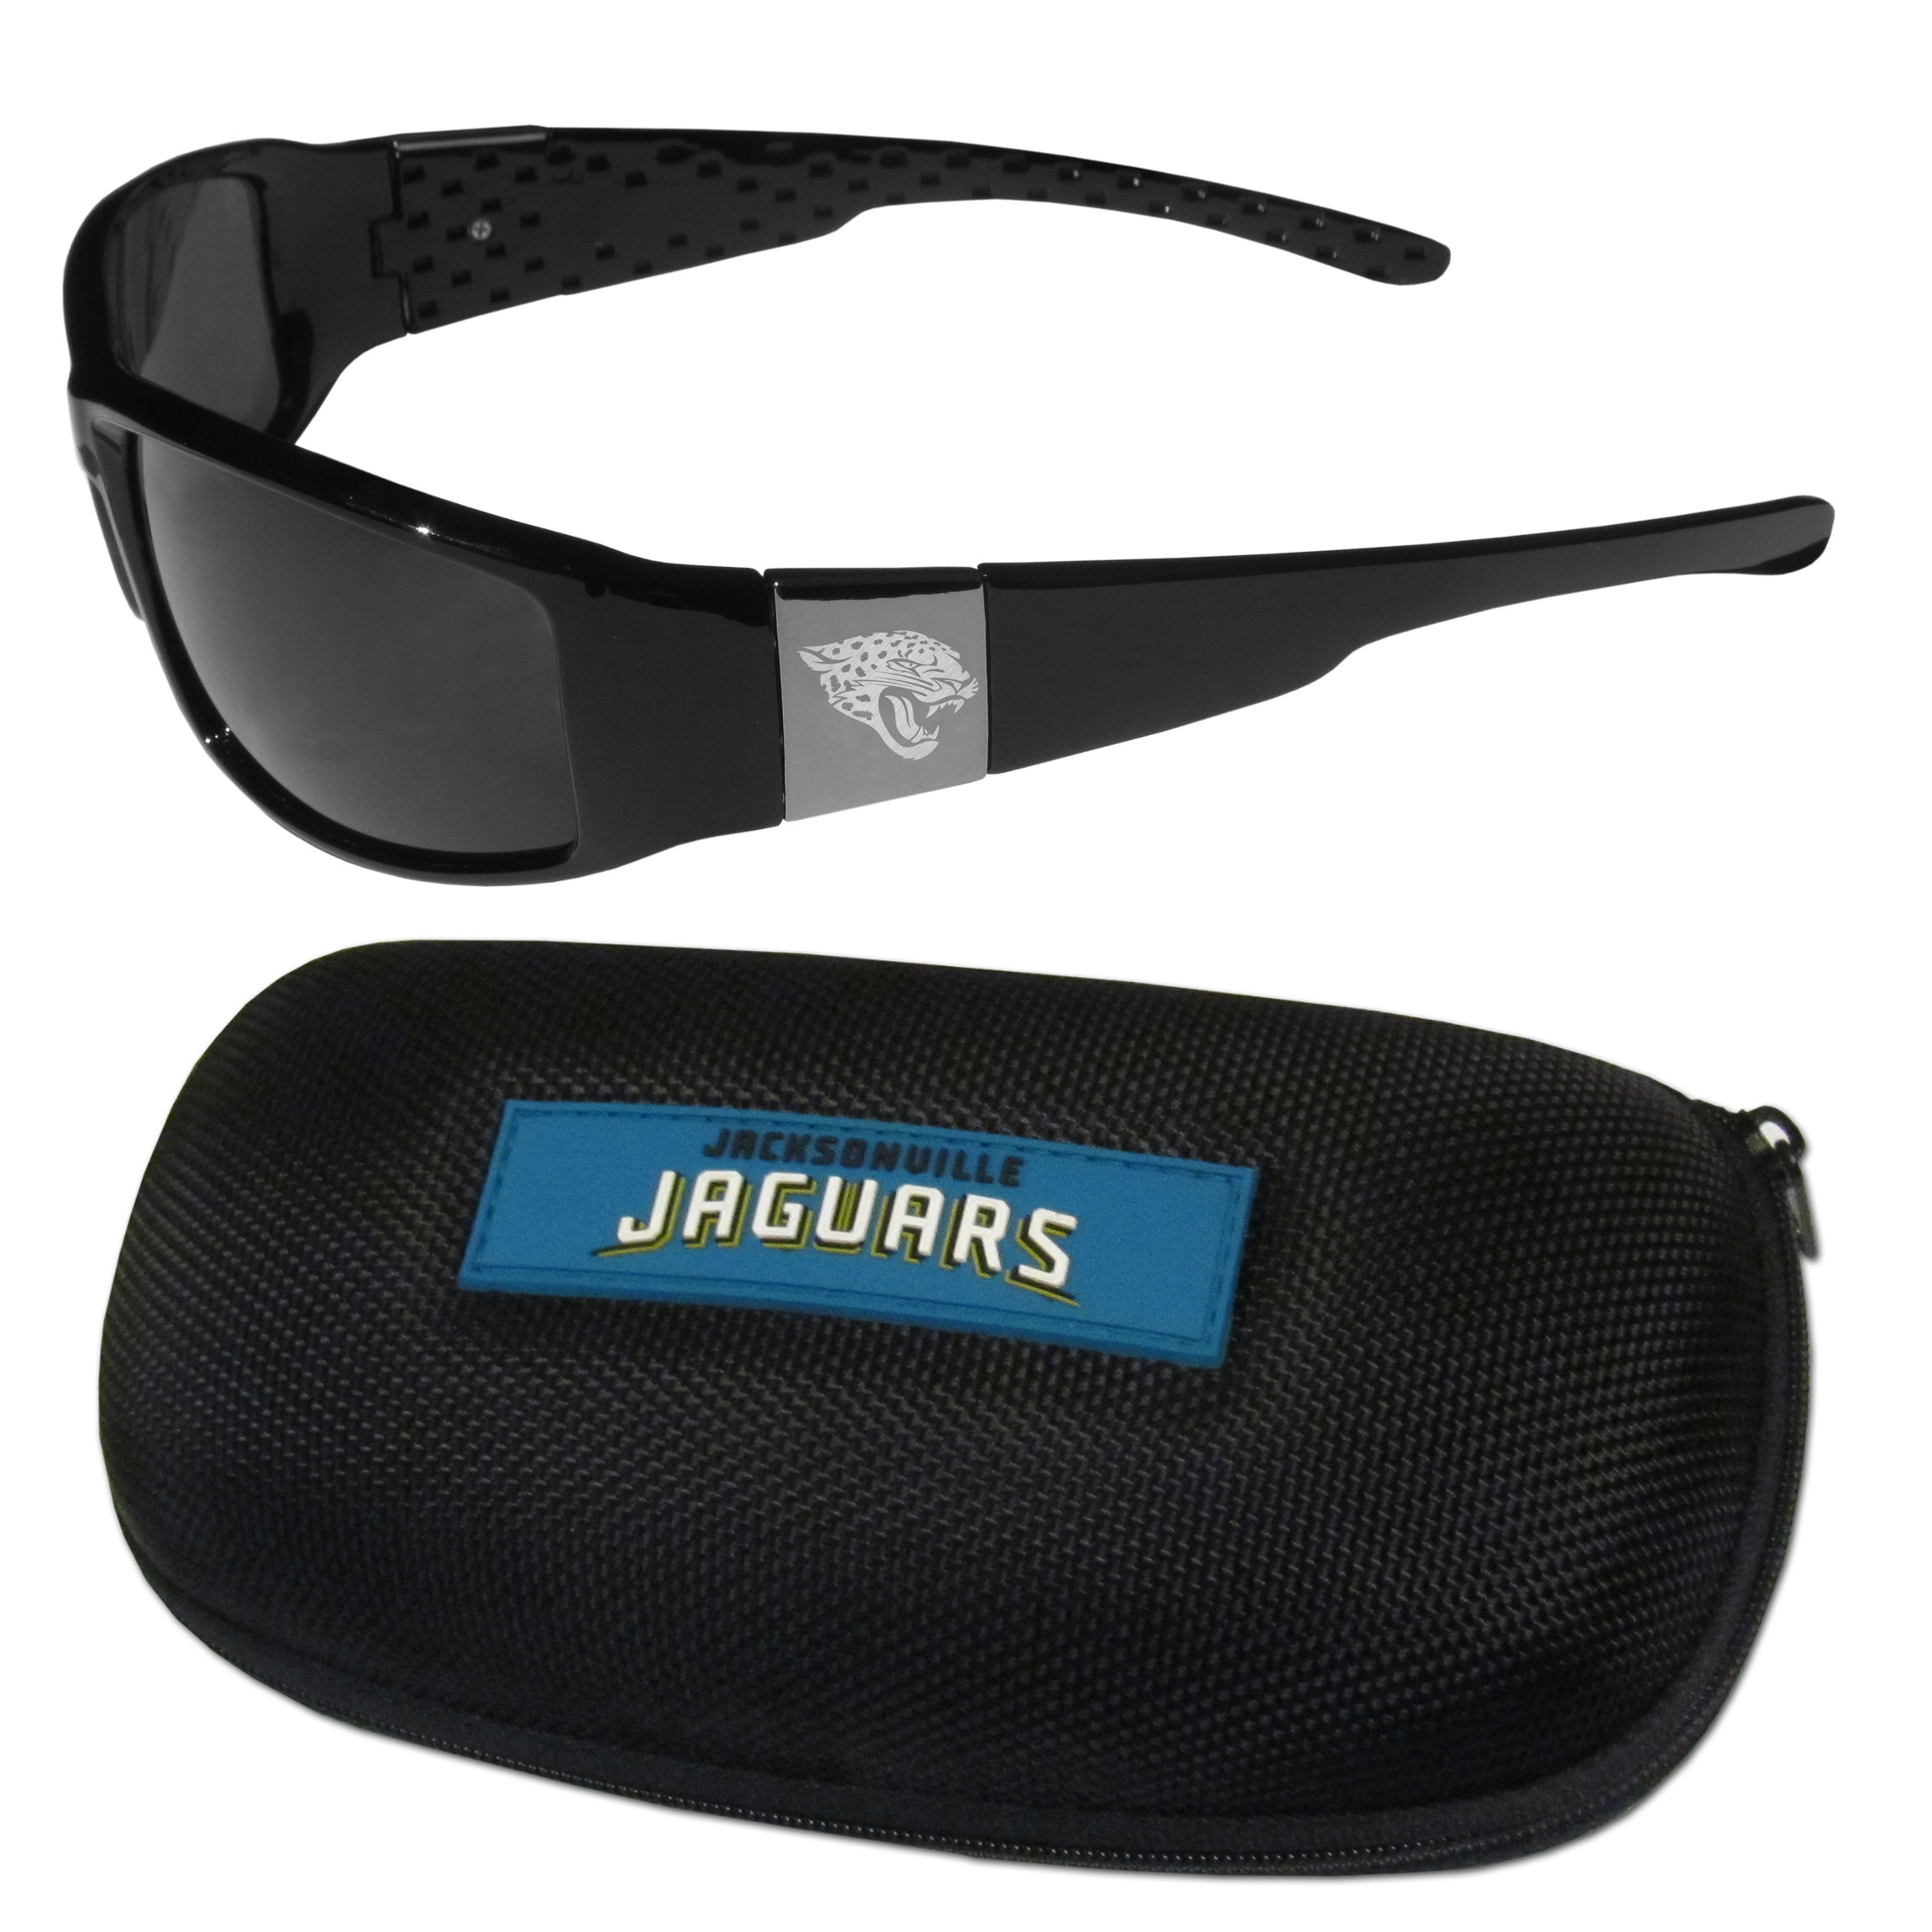 Jacksonville Jaguars Chrome Wrap Sunglasses and Zippered Carrying Case - This set includes our sleek and stylish Jacksonville Jaguars chrome wrap sunglasses and our hard shell, zippered carrying case. The sunglasses feature etched team logos on each arm and 100% UVA/UVB protection. The case features a large and colorful team emblem.